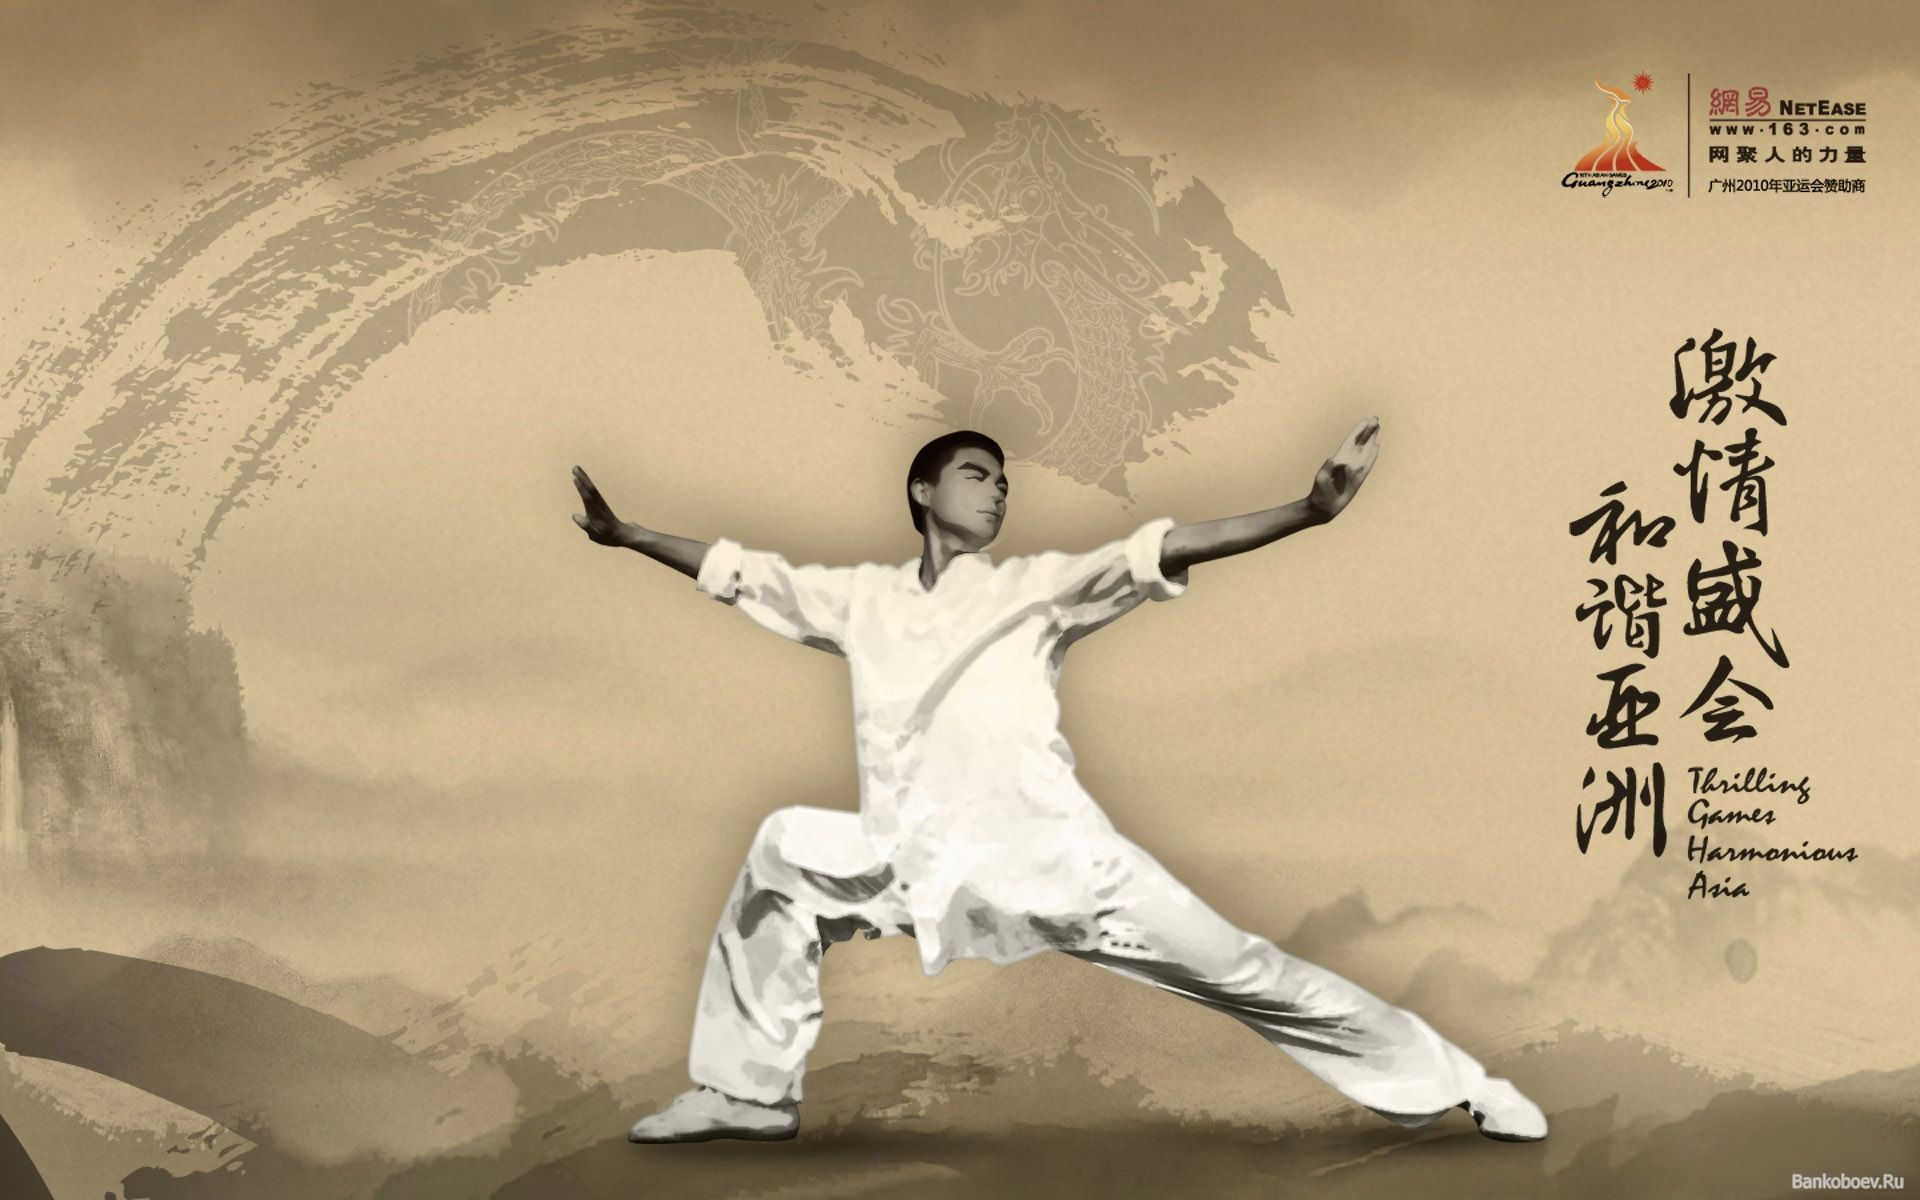 karate wallpapers hd, desktop backgrounds, images and pictures 1920